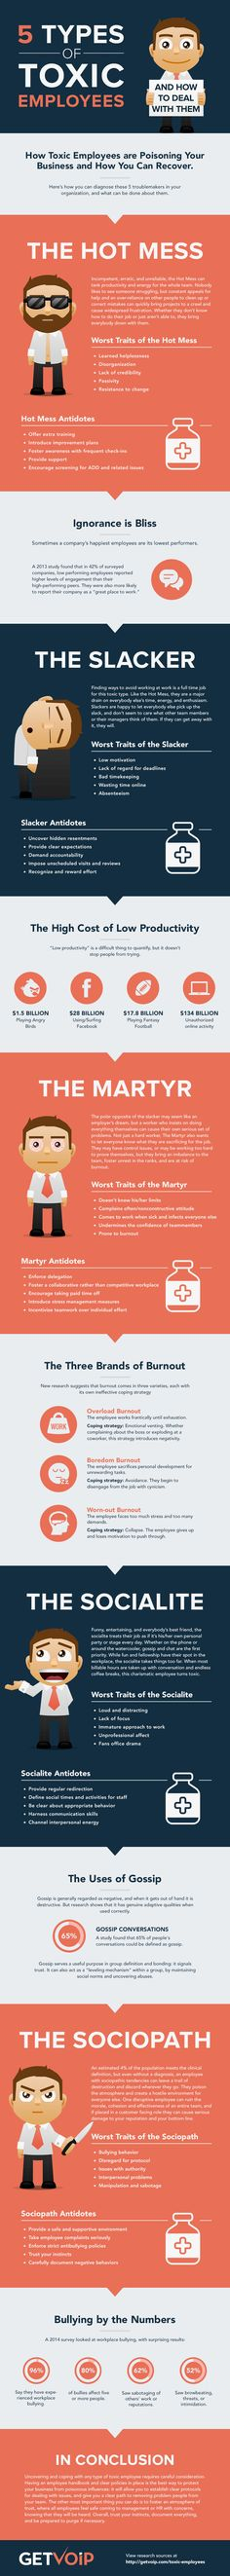 5 types of toxic employees and how to deal with them